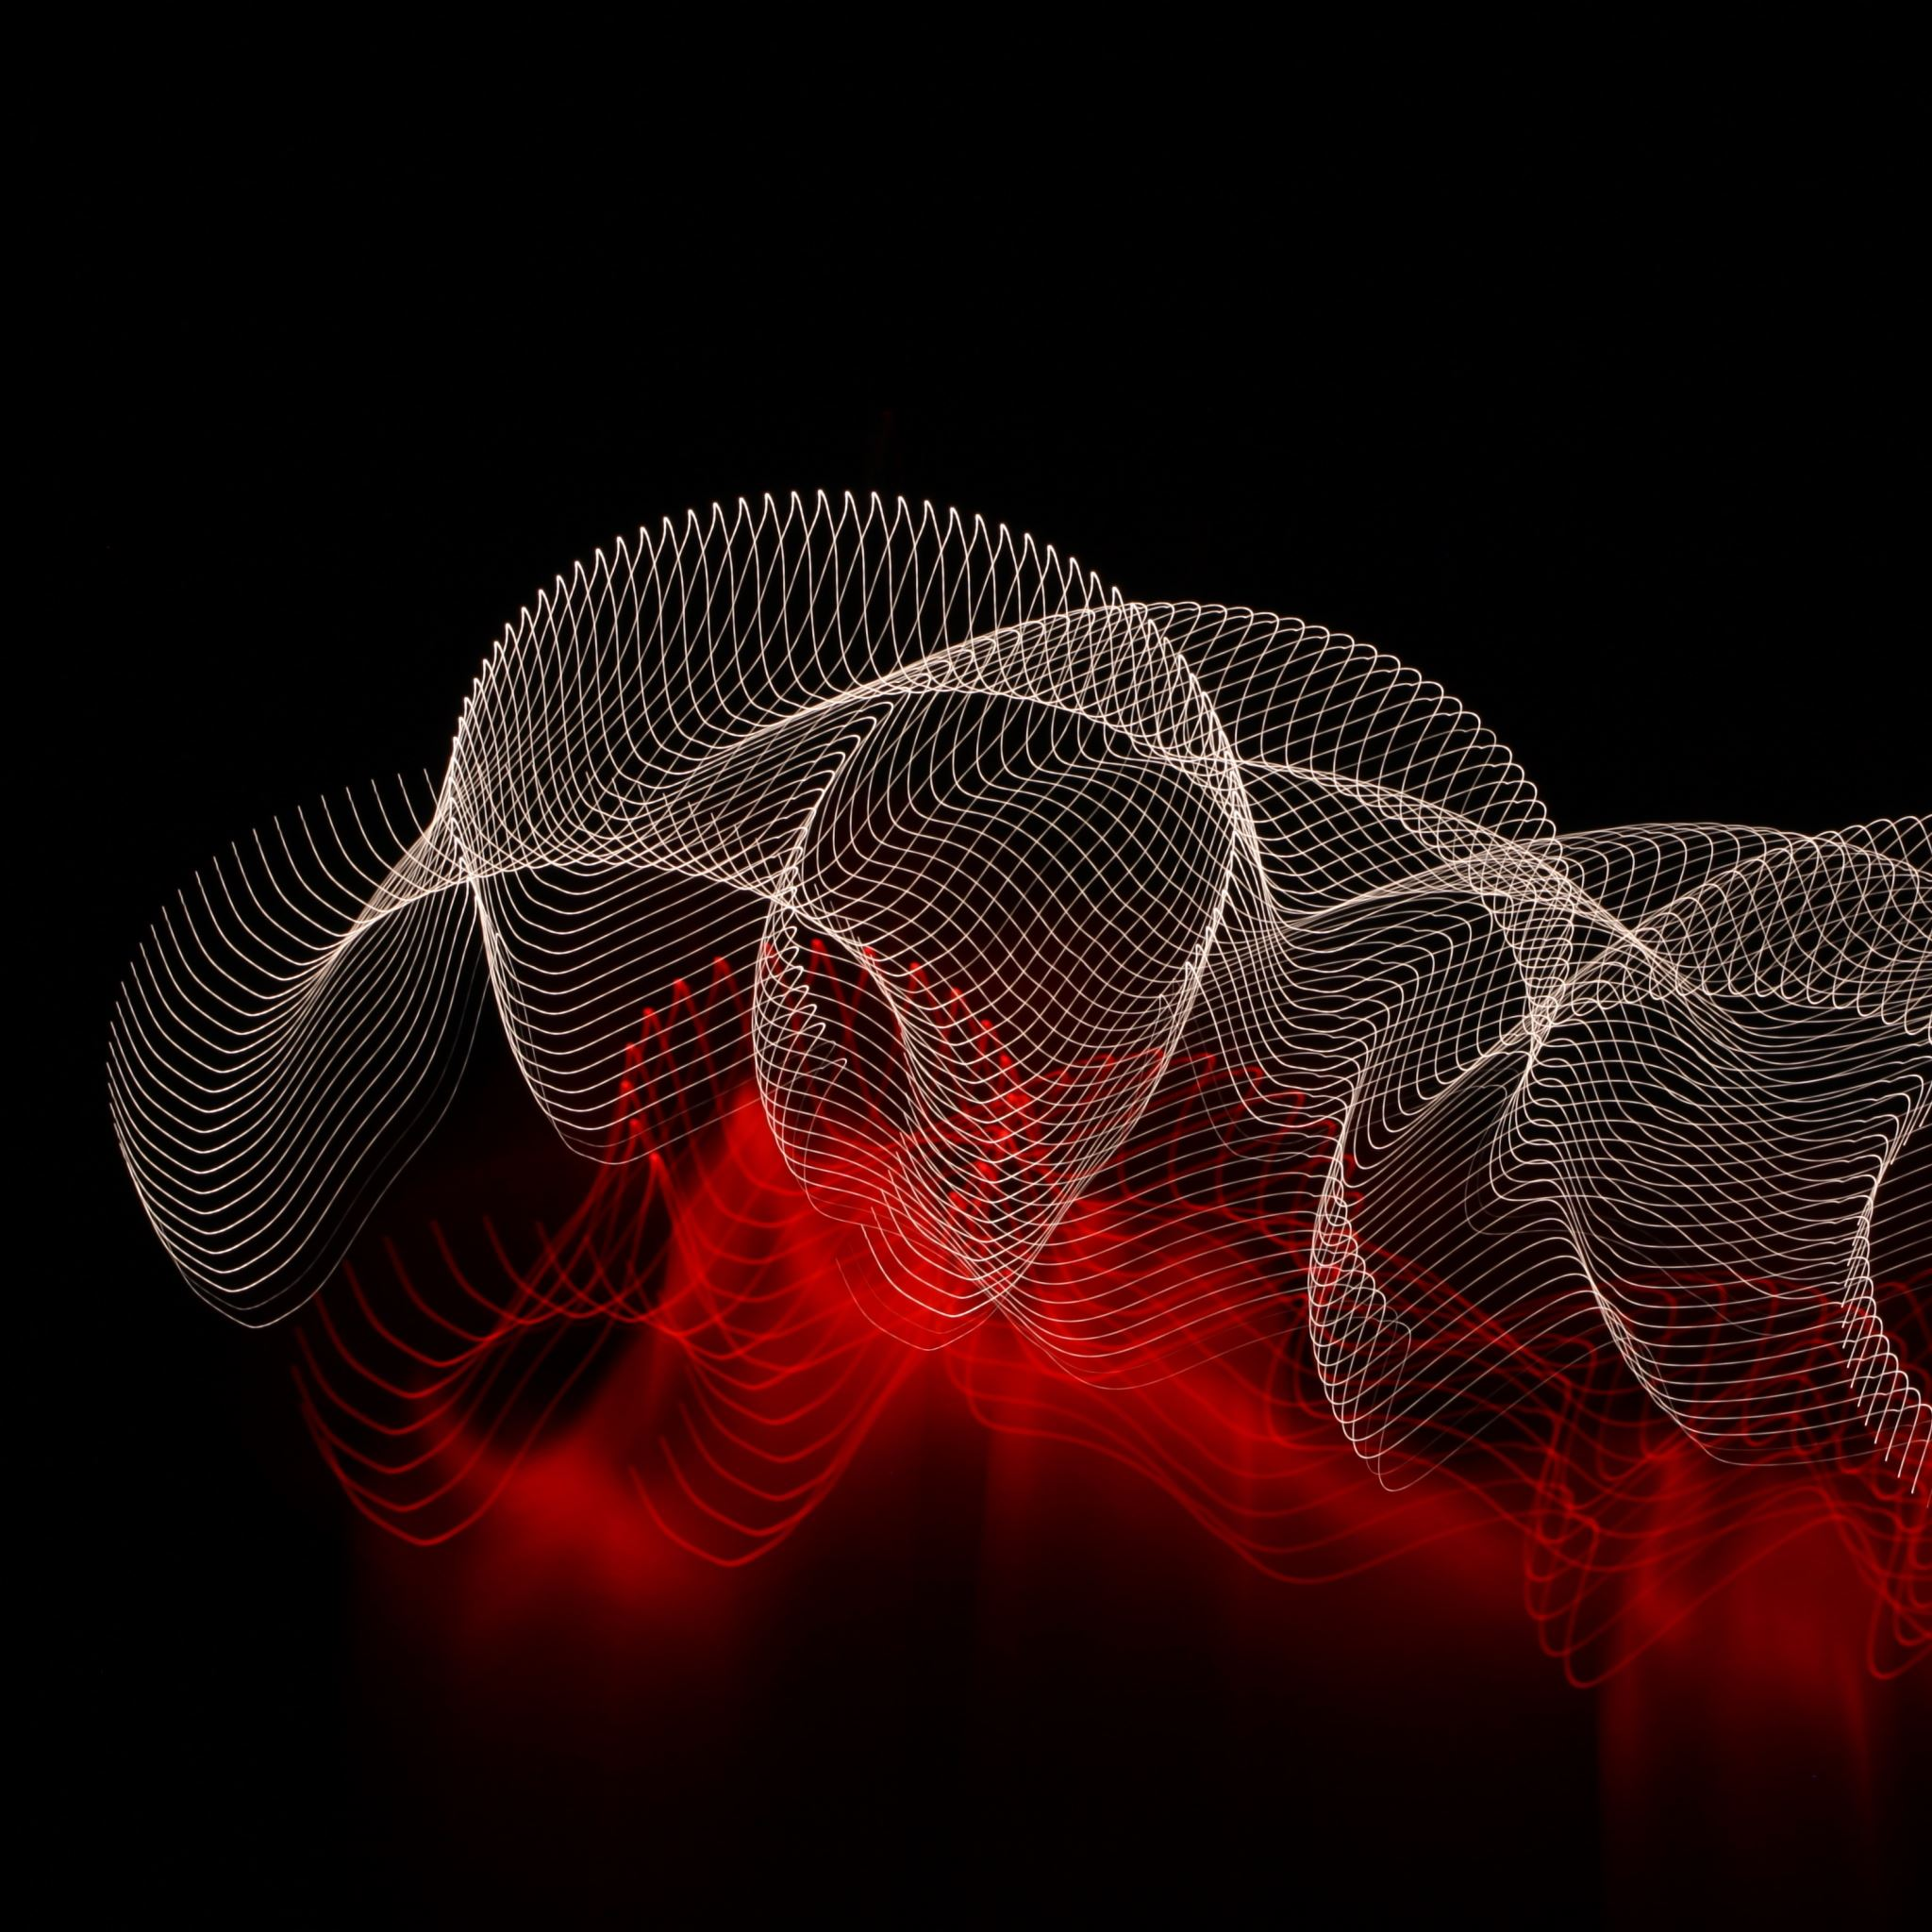 Abstract Lines Spots Dark Background IPad Air Wallpapers